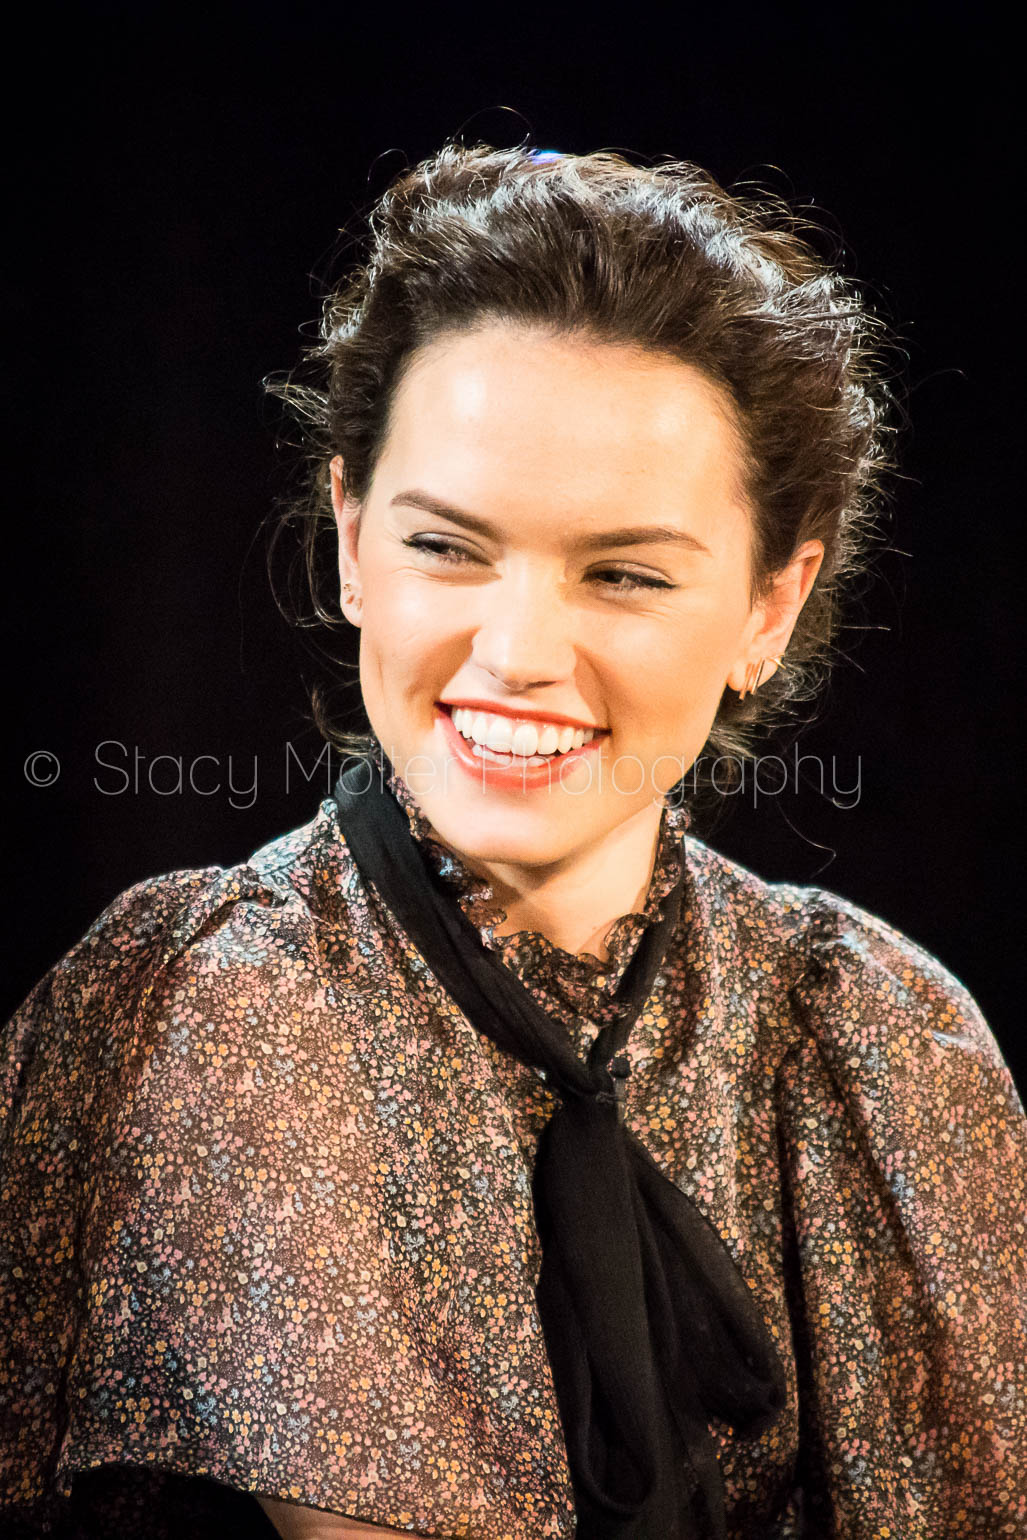 Daisy Ridley - Star Wars The Force Awakens Press Conference